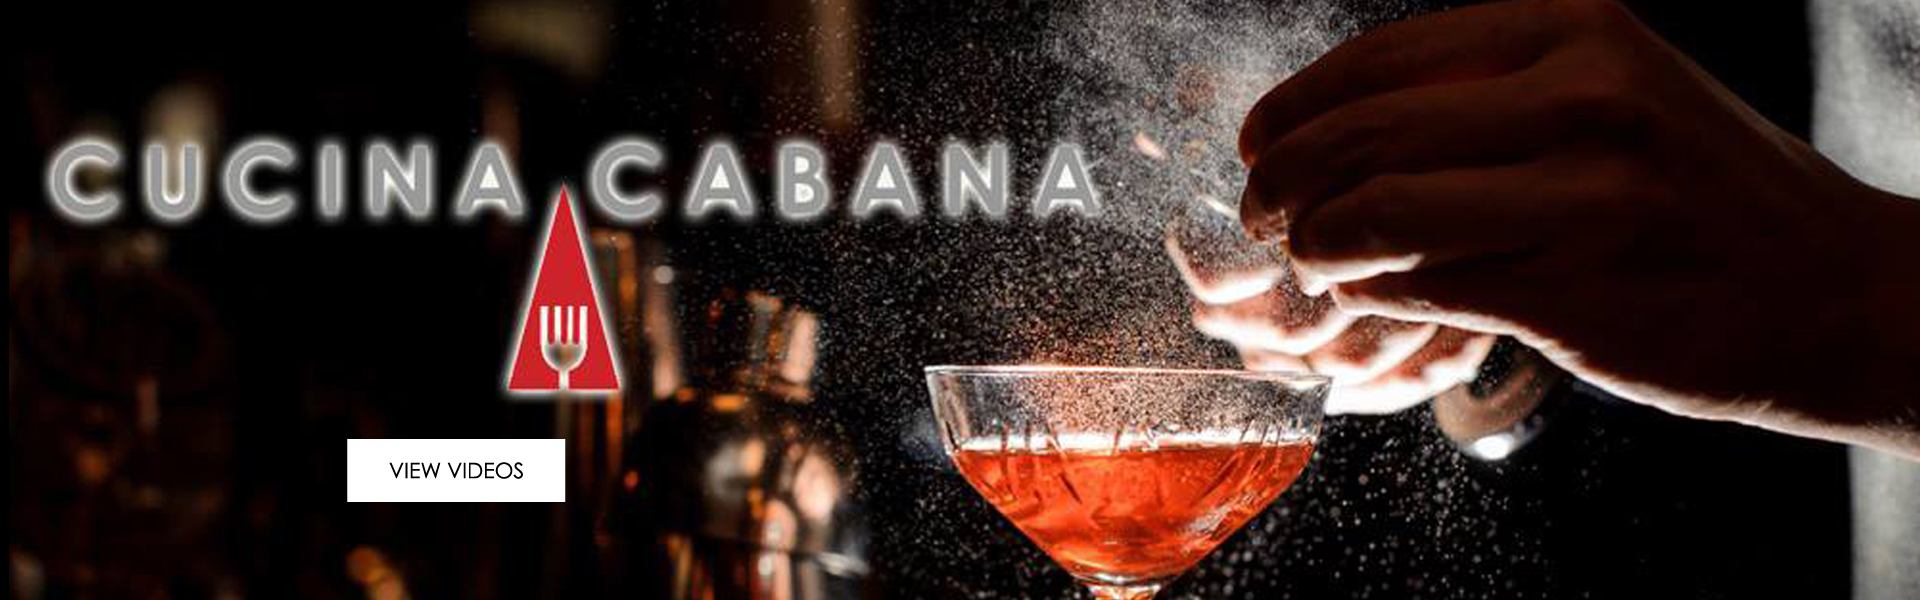 cucina cabana north palm beach